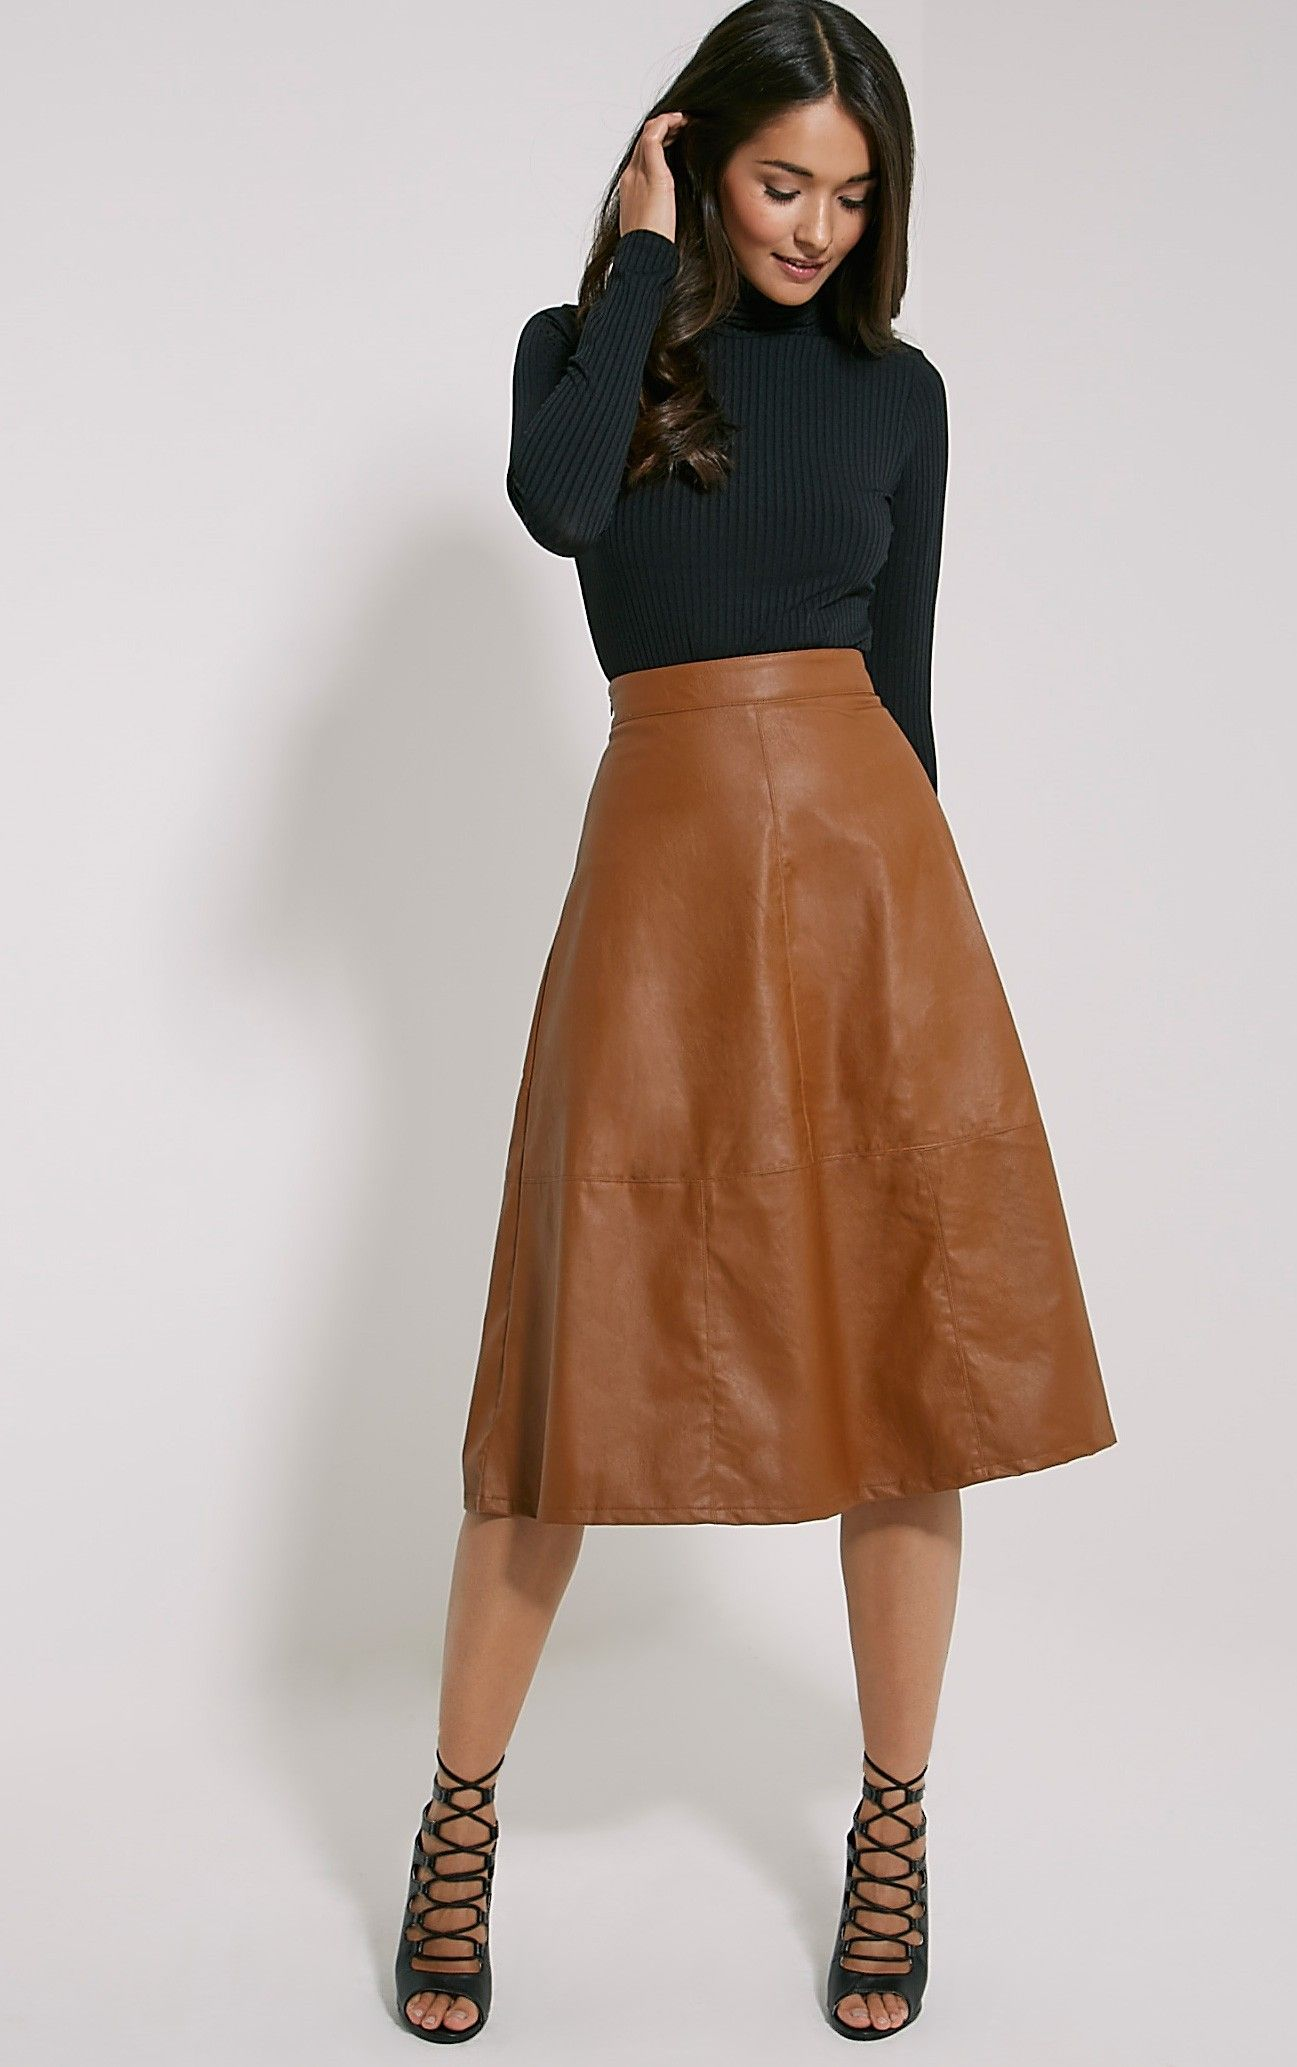 caacf92050 Match my midi skirt with turtle neck sweater